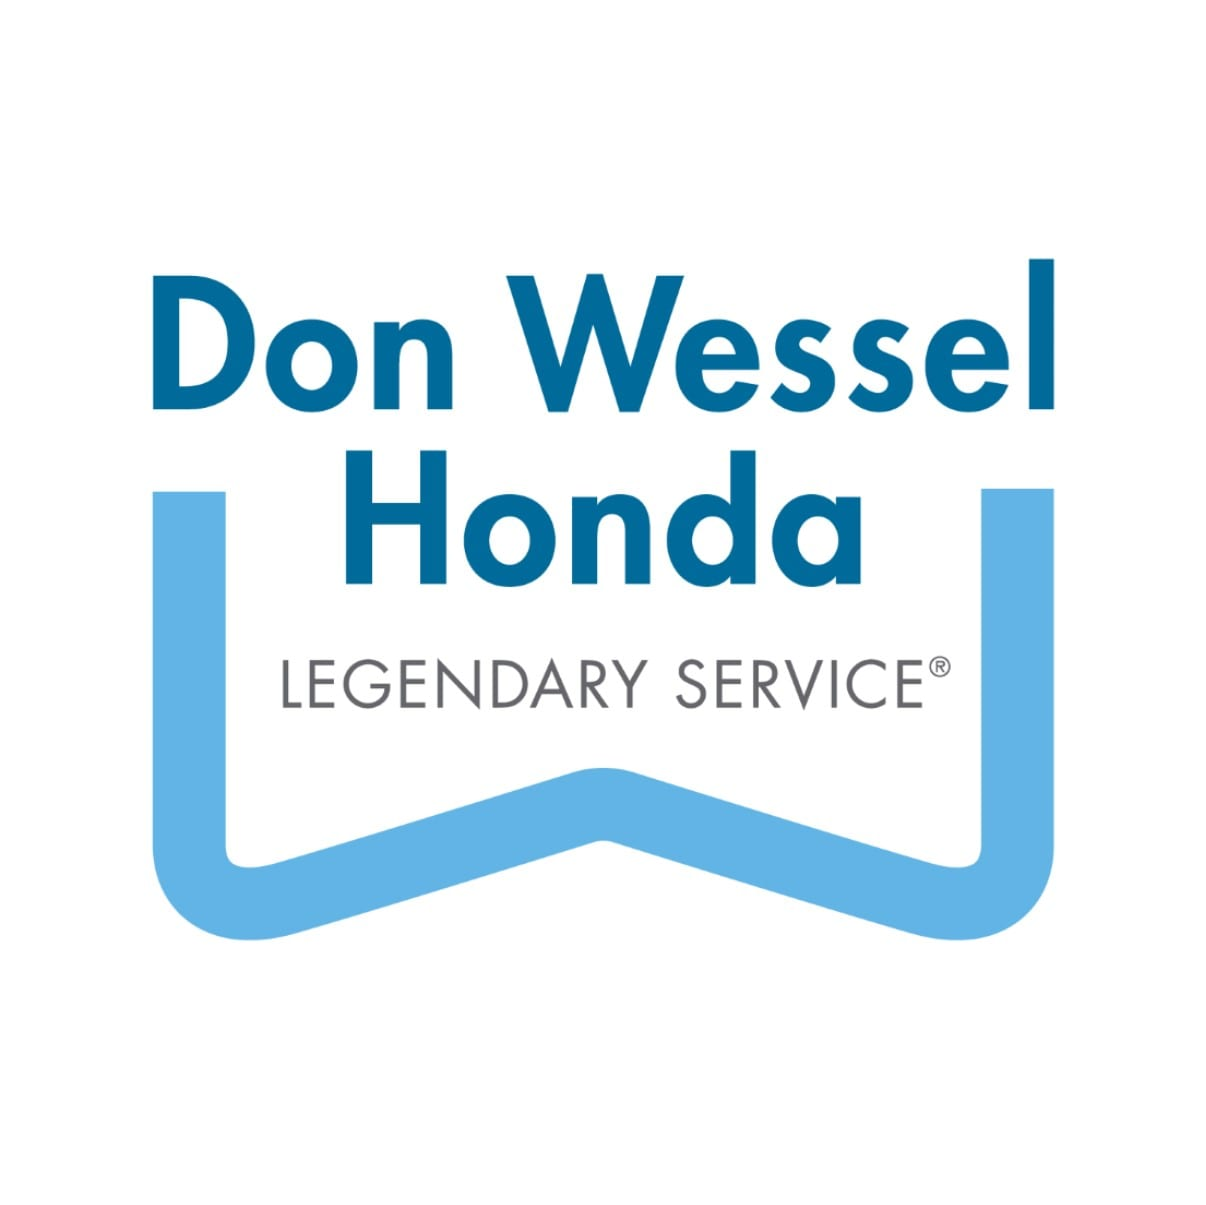 Don Wessel New Square - Advertising Agency Springfield Missouri